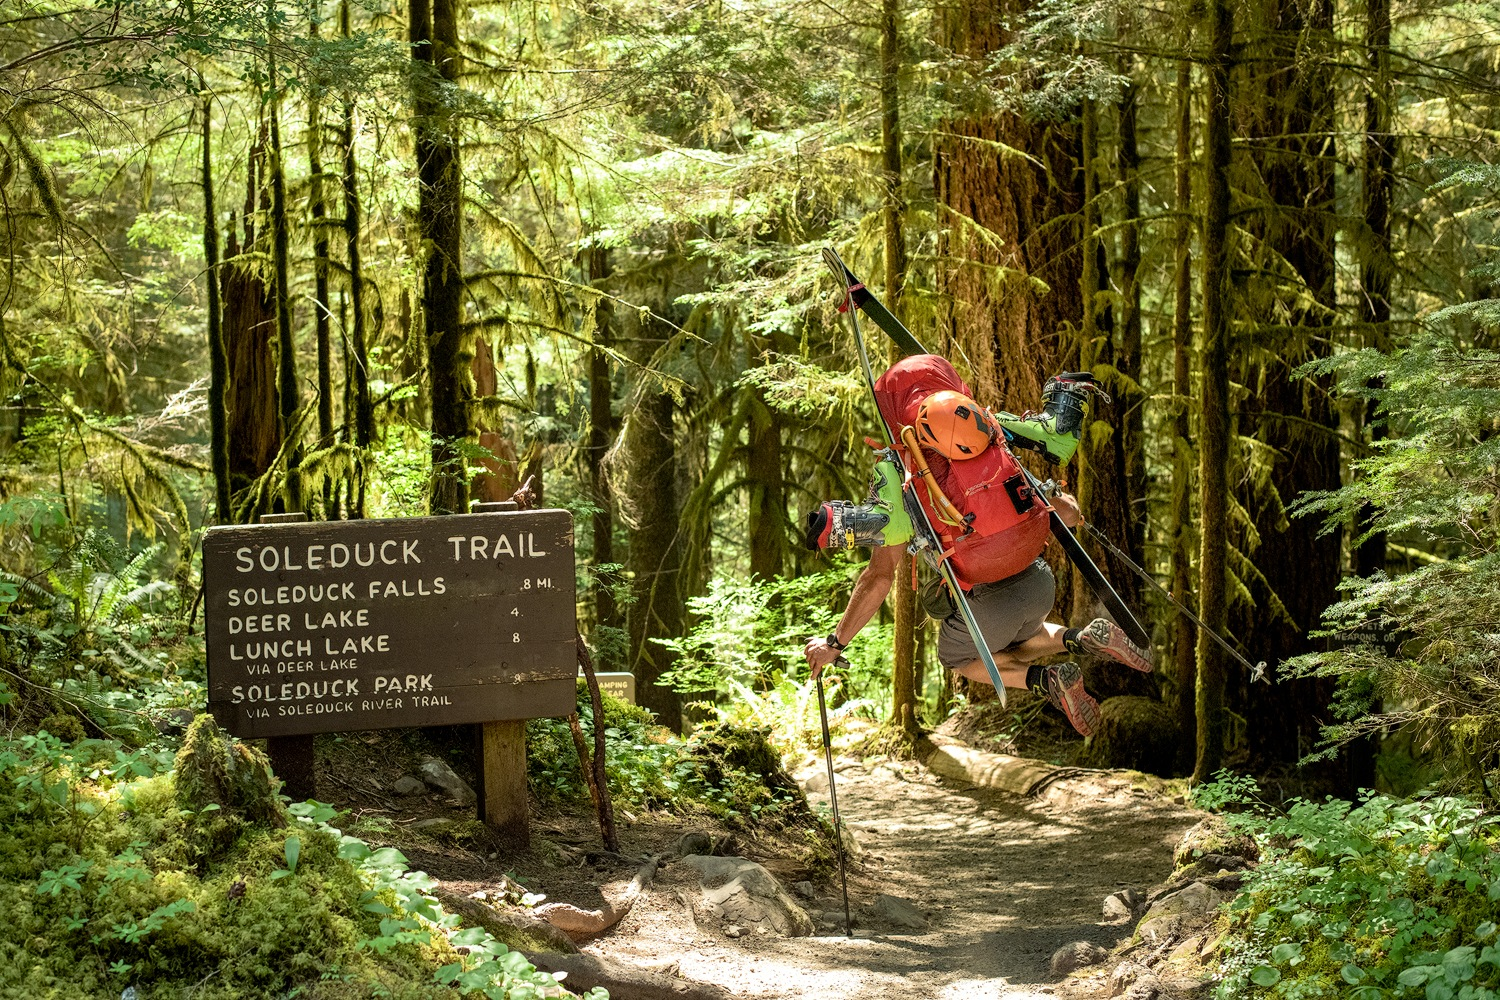 A backcountry skier with his skis on his backpack jumps in mid-air at the trailhead in the rainforest on the Olympic Peninsula